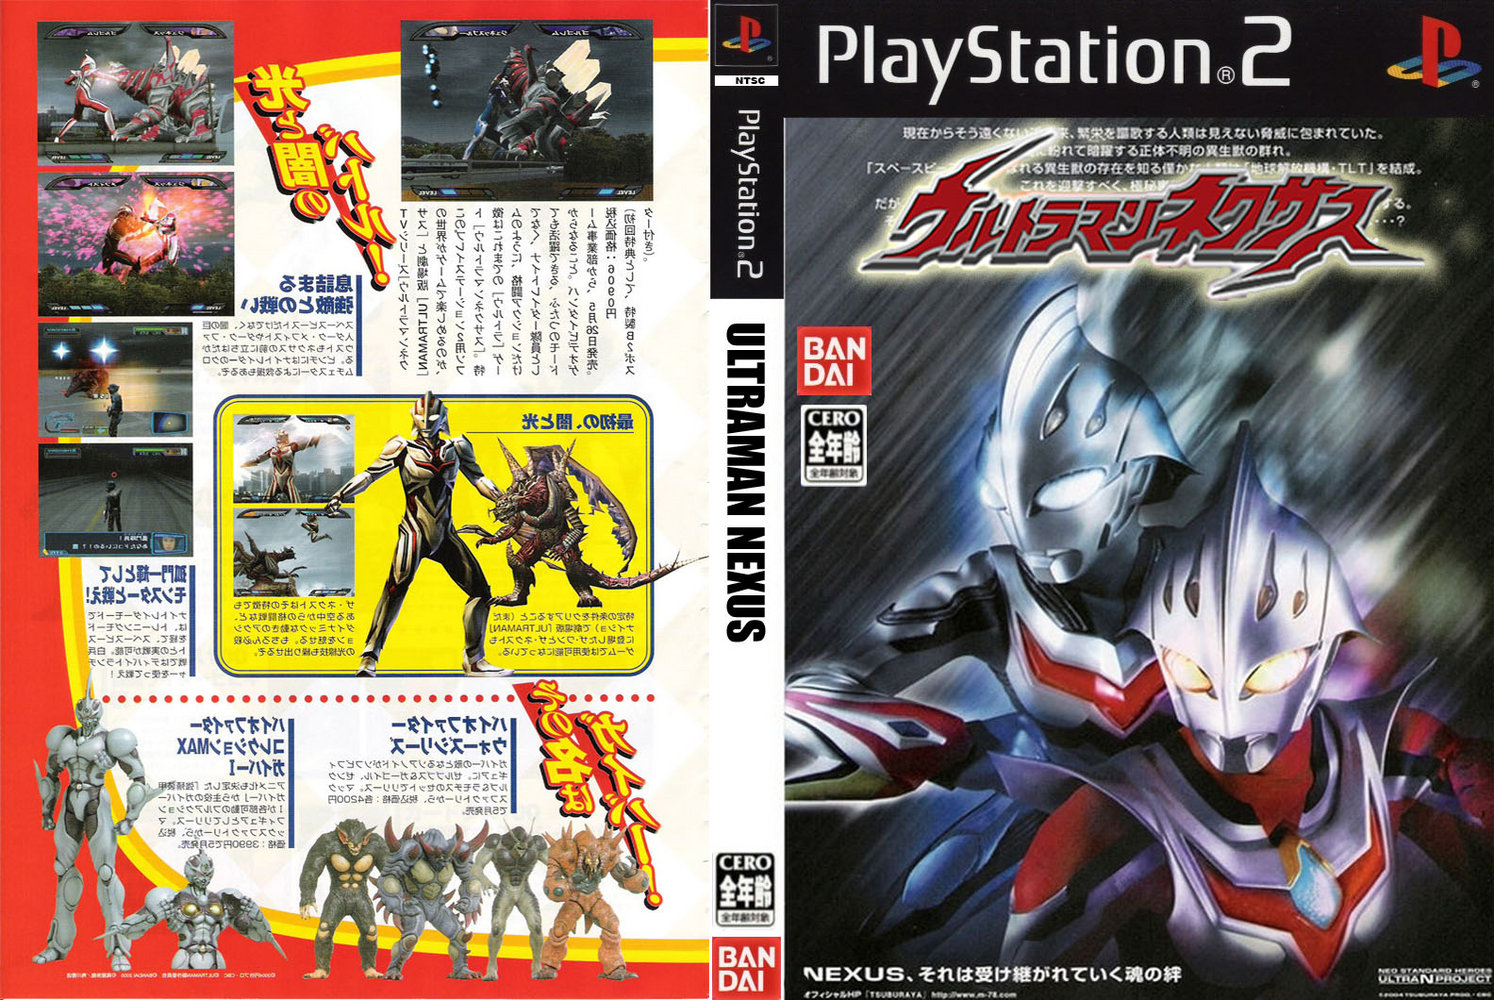 Download Iso Game Ultraman Figting Psp2 Firefodas S Diary